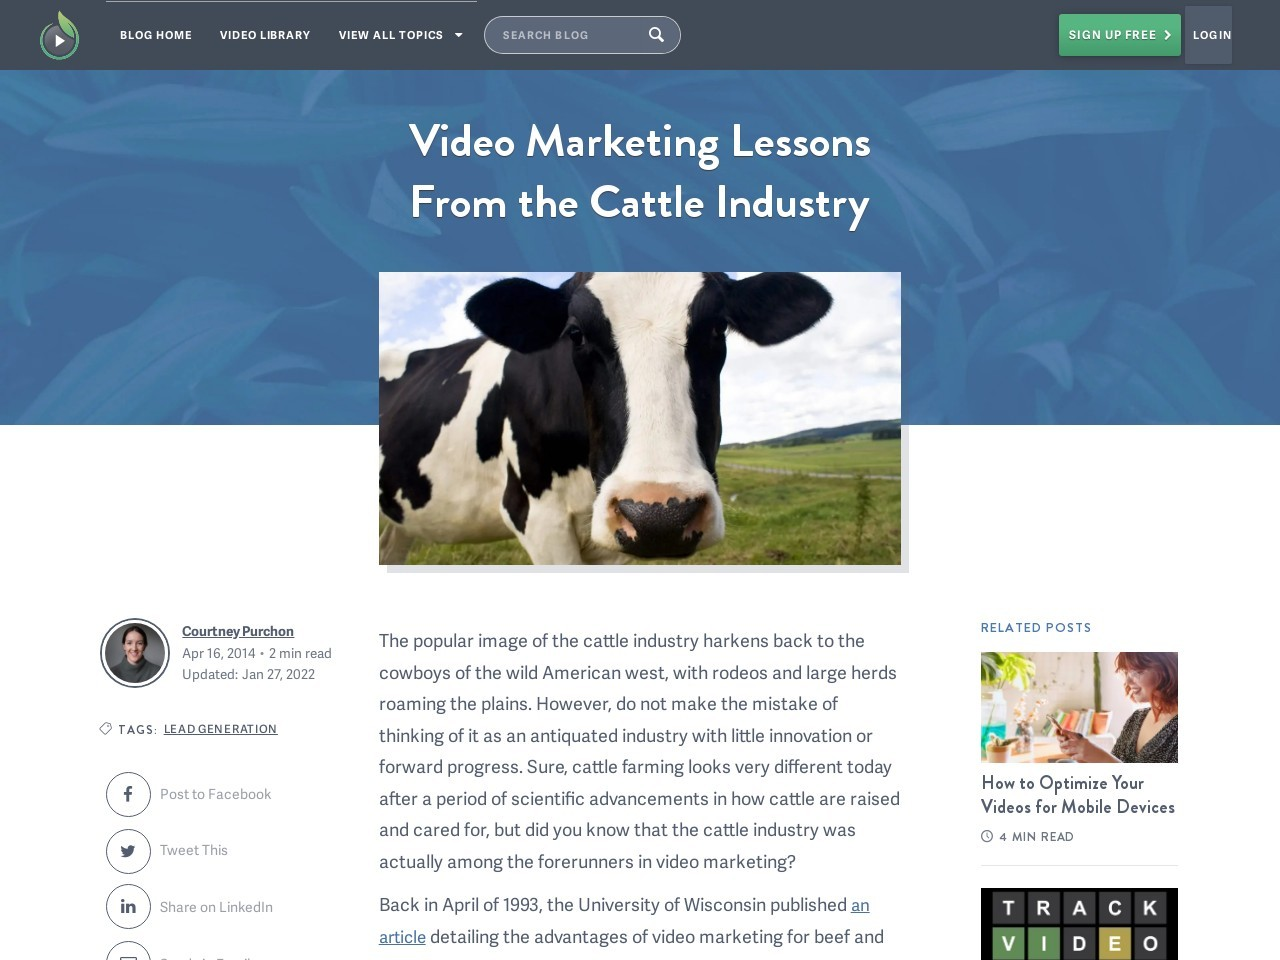 Video Marketing Lessons From the Cattle Industry